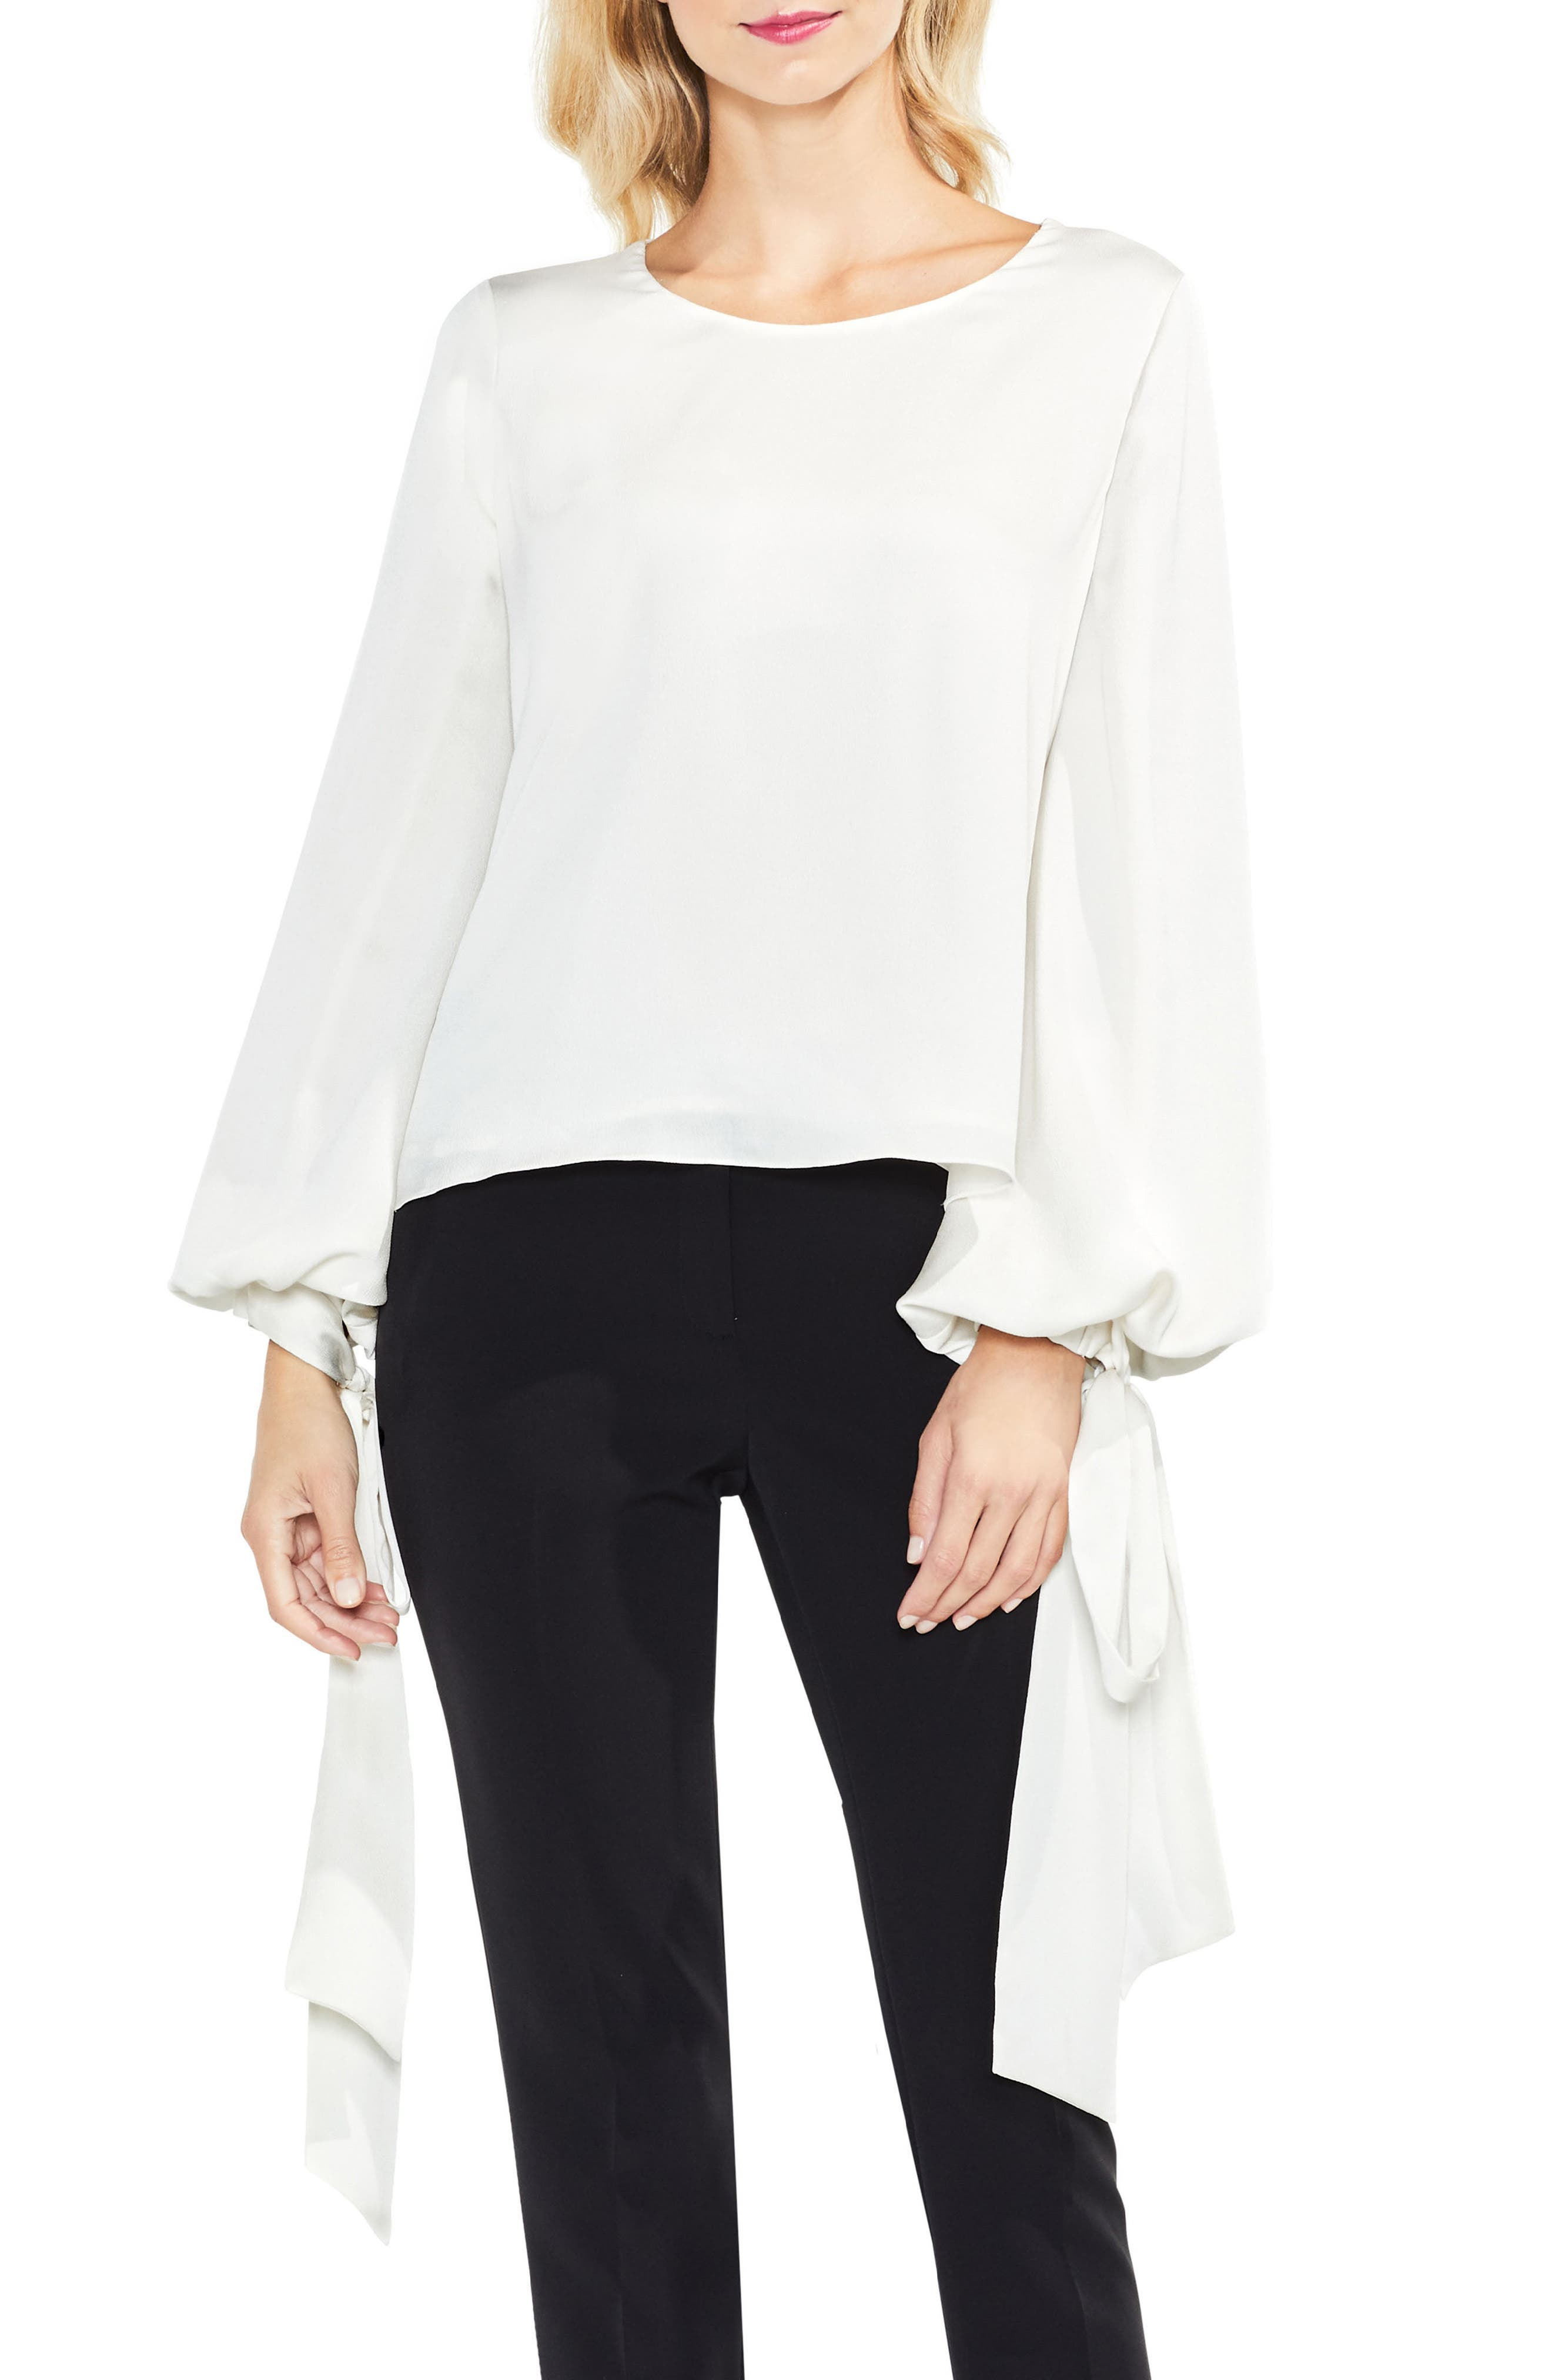 Vince Camuto Tie Cuff Bubble Sleeve Blouse (Regular & Petite)